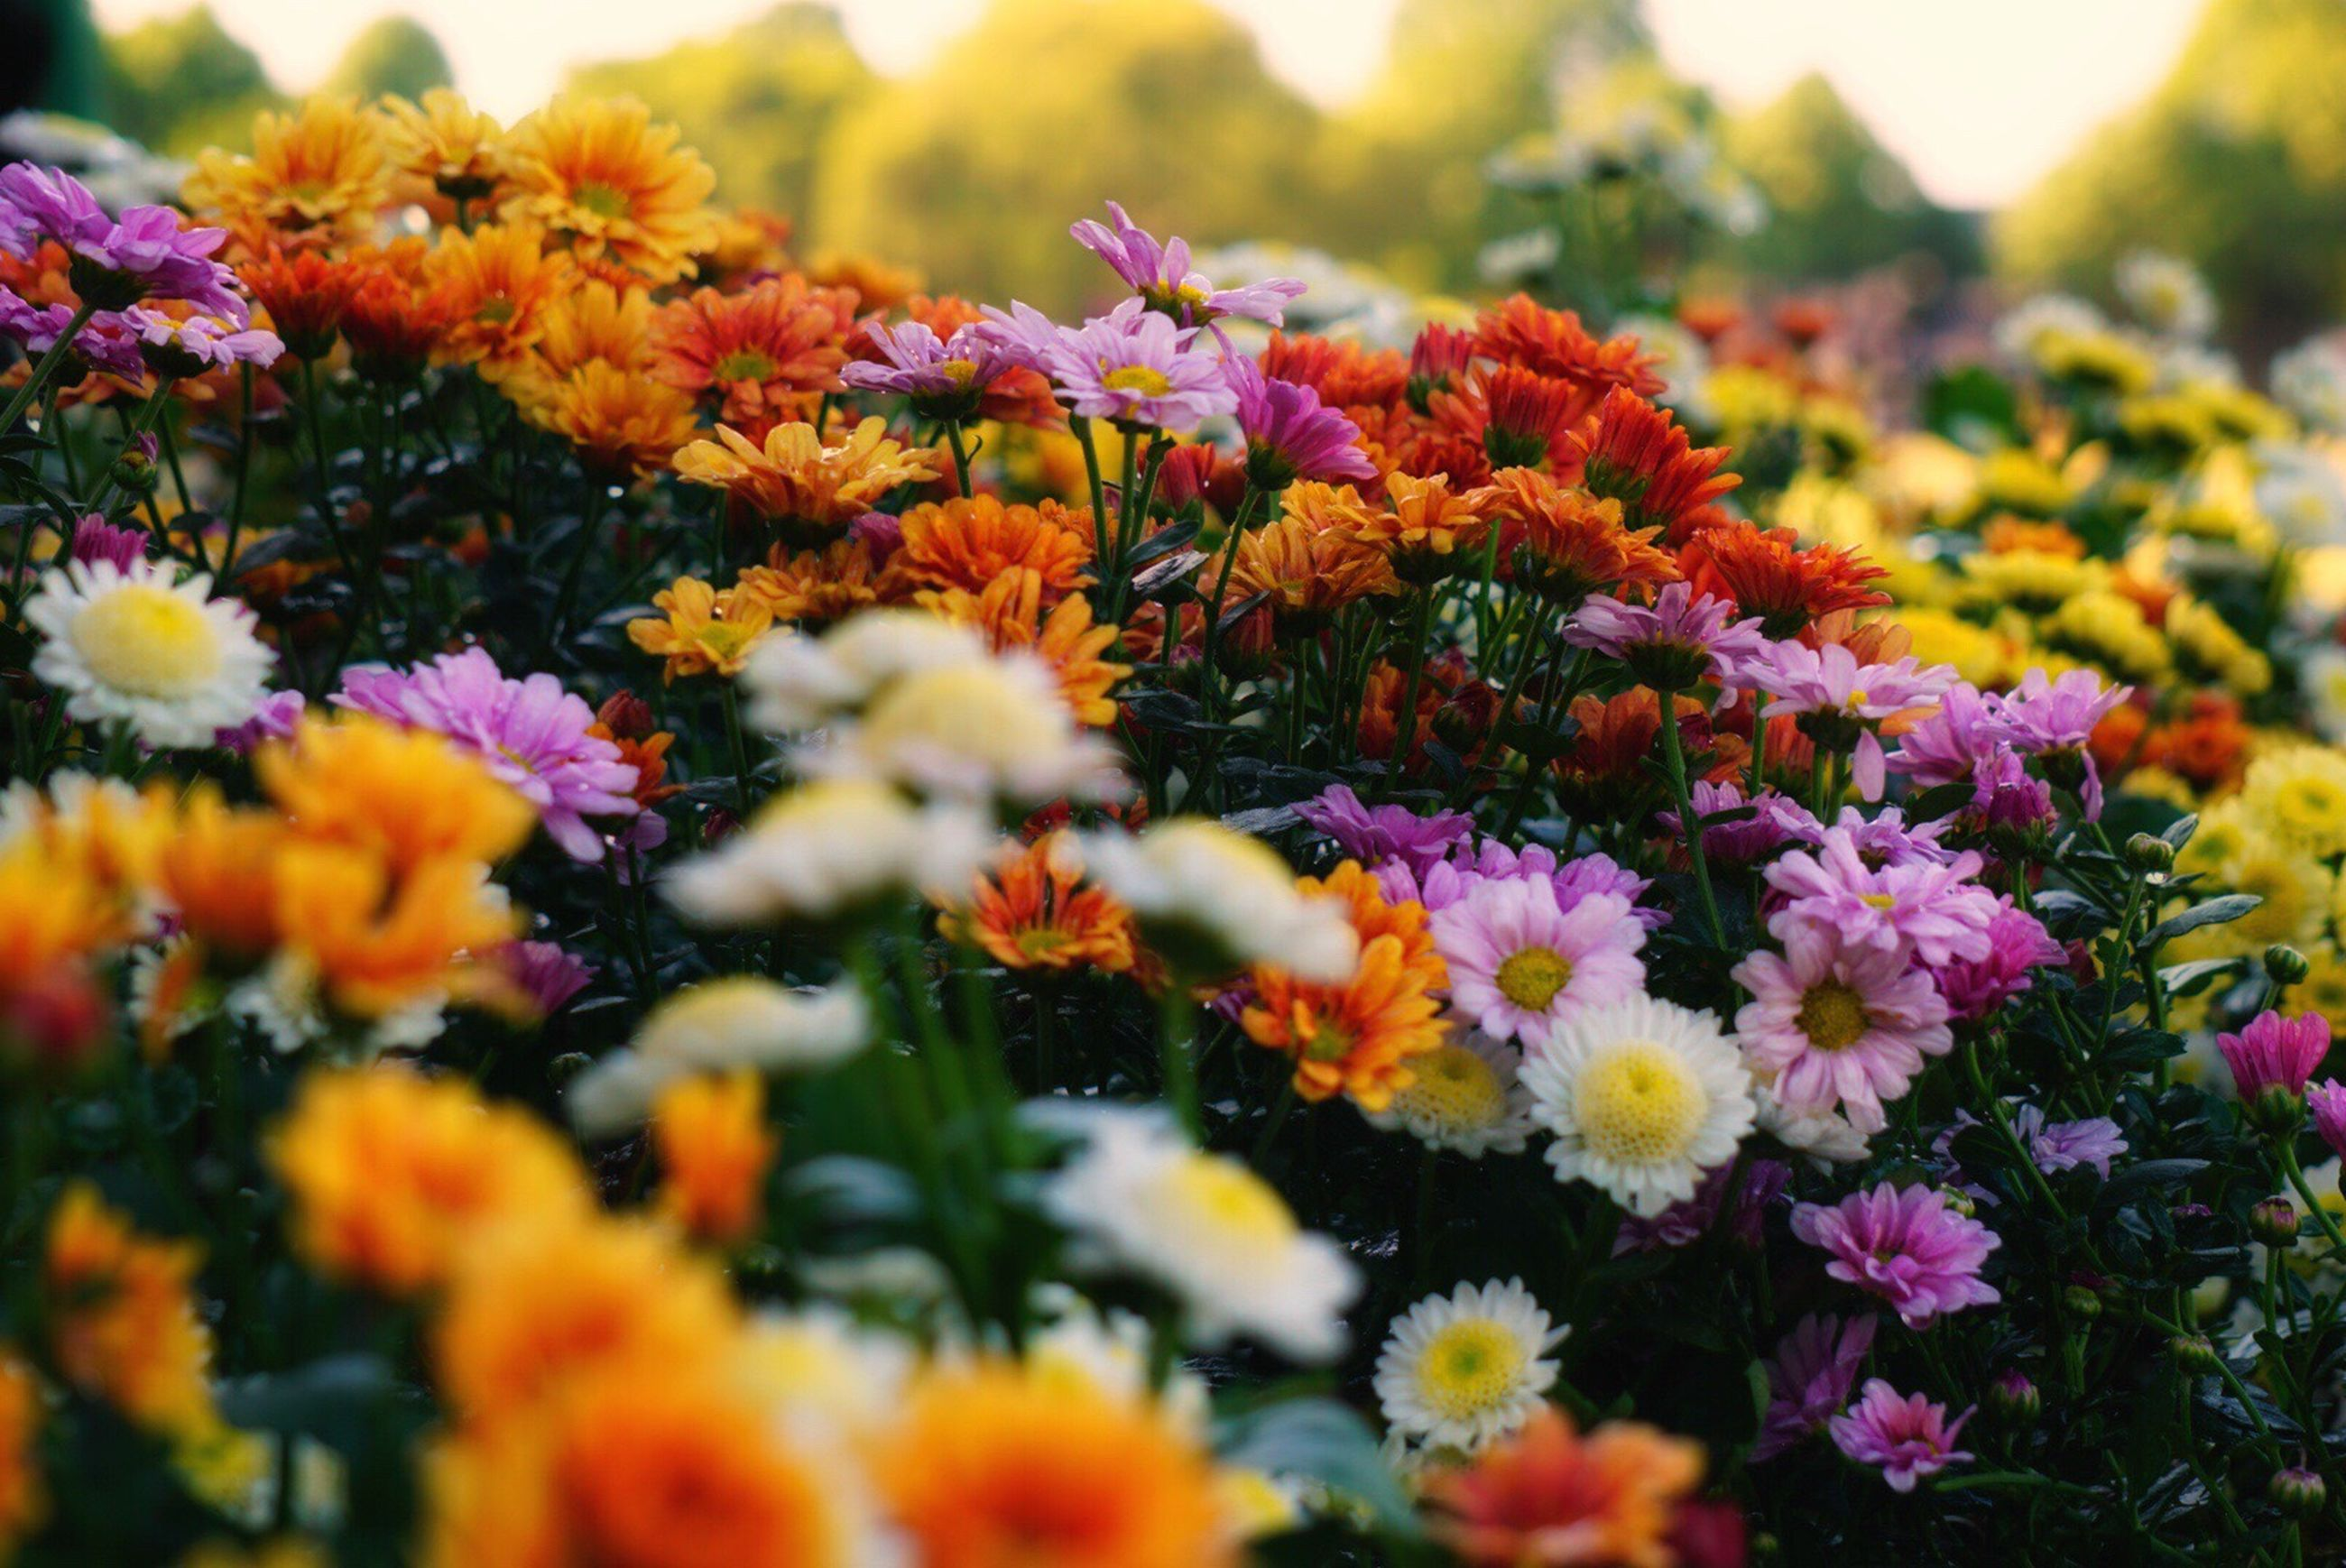 flower, growth, nature, beauty in nature, fragility, plant, freshness, no people, day, outdoors, blooming, close-up, flower head